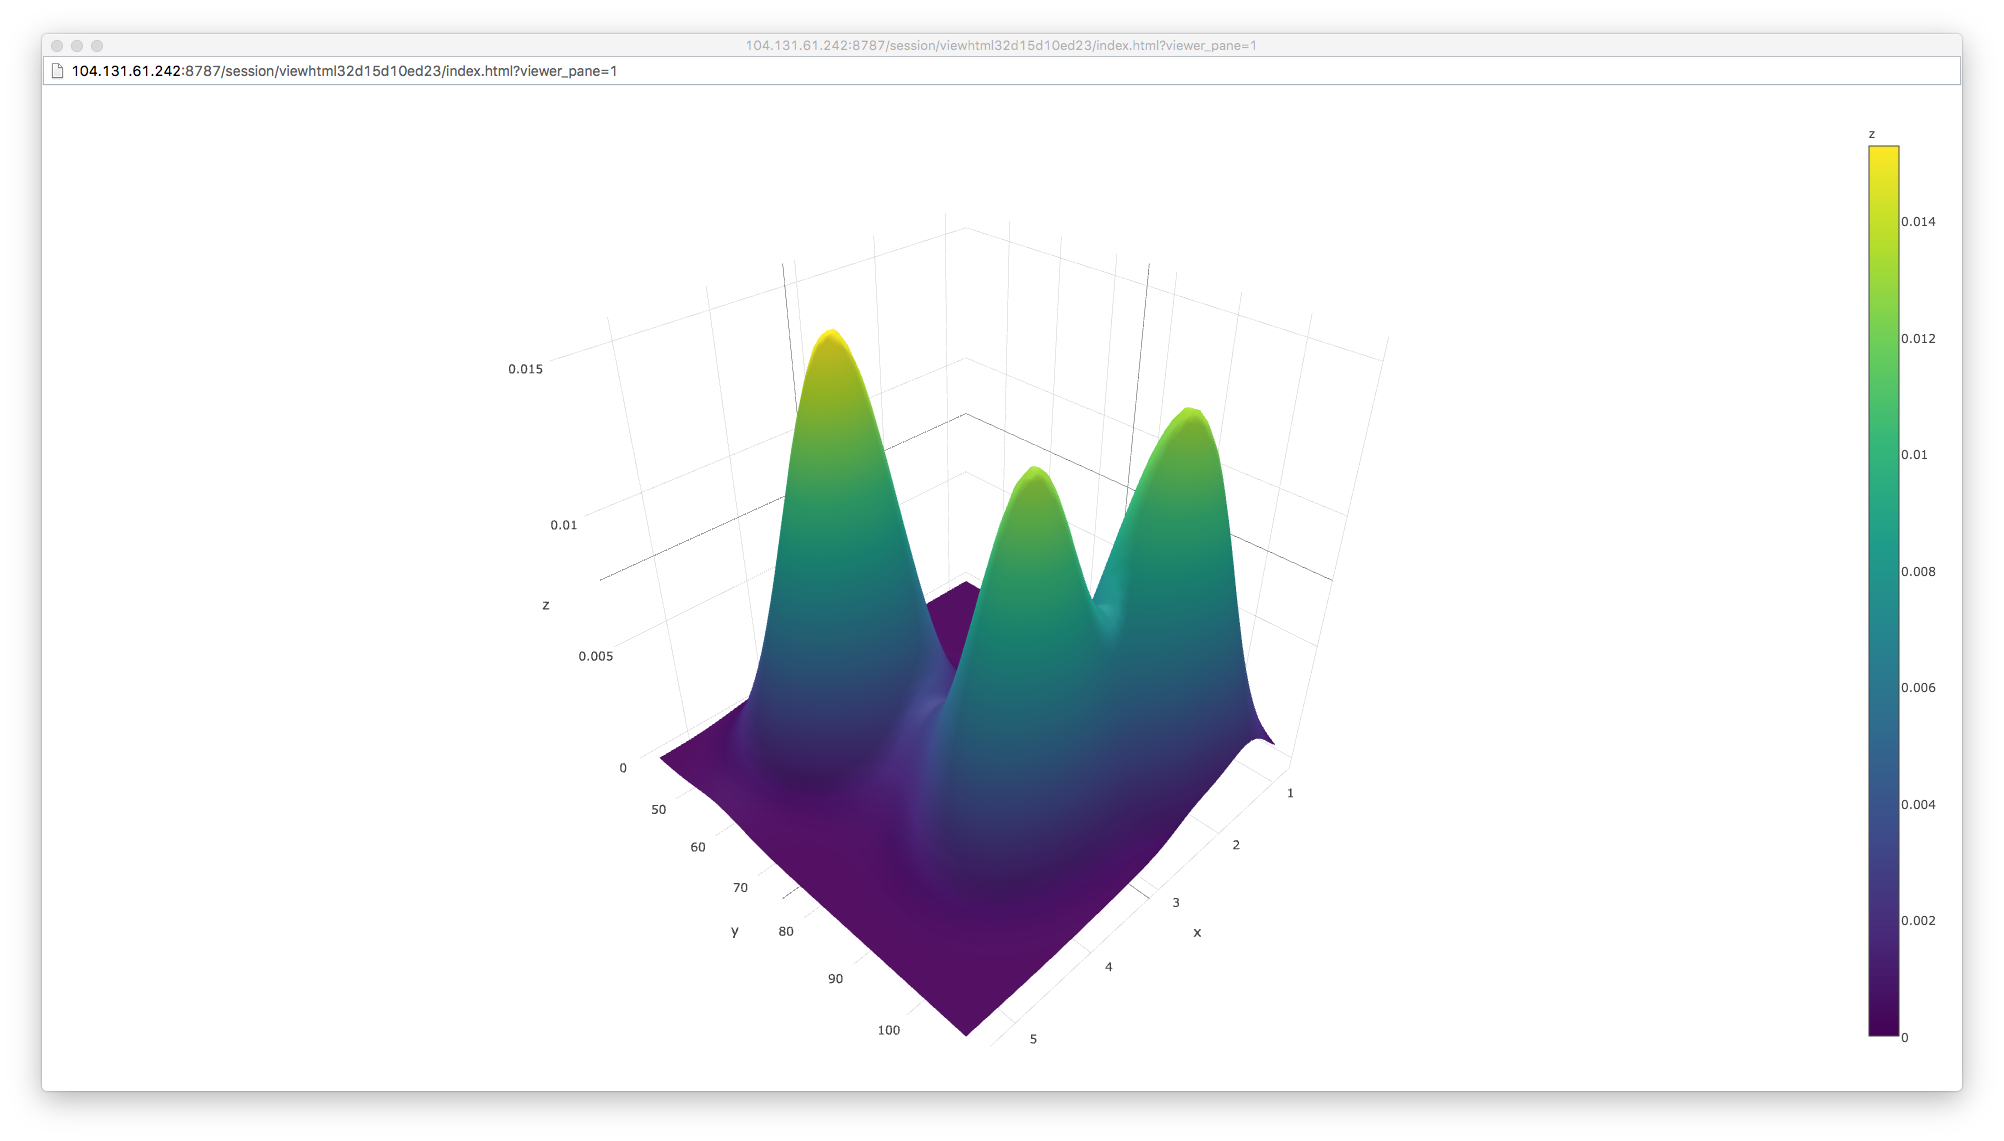 Creating a surface plot using Plotly